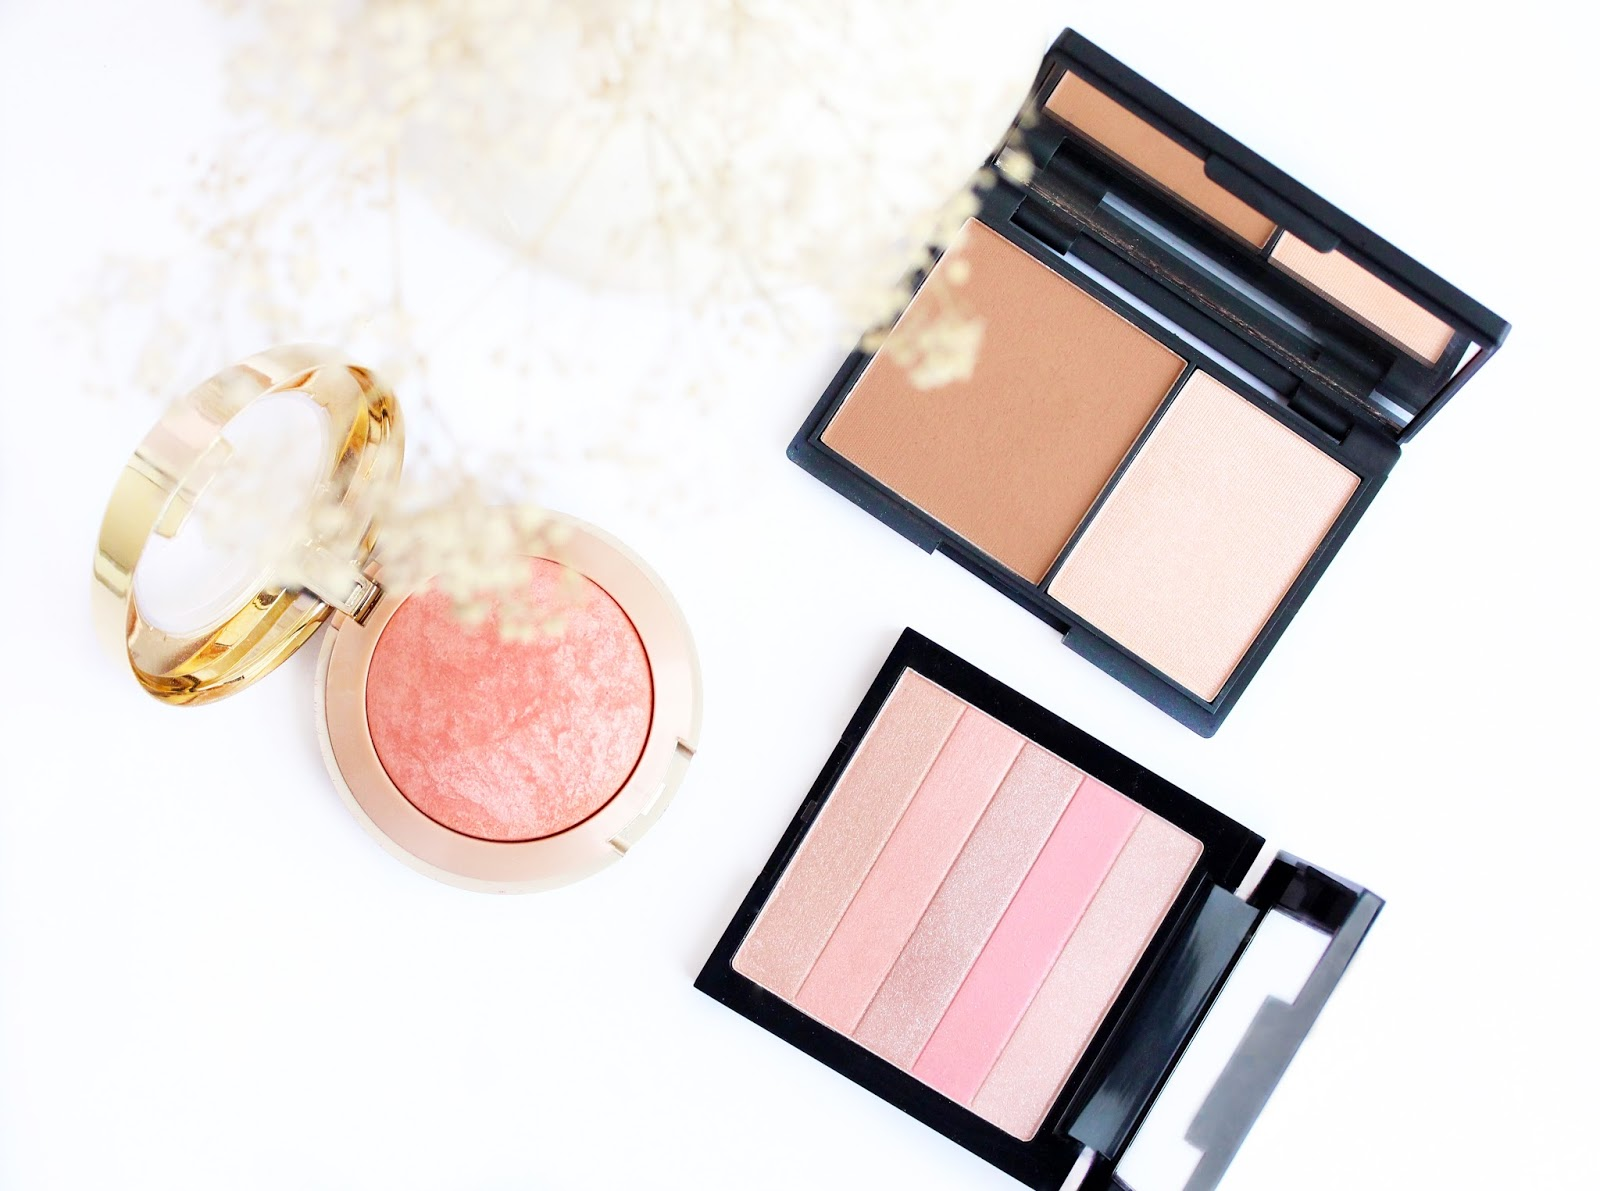 Spring 2015 cheeks products